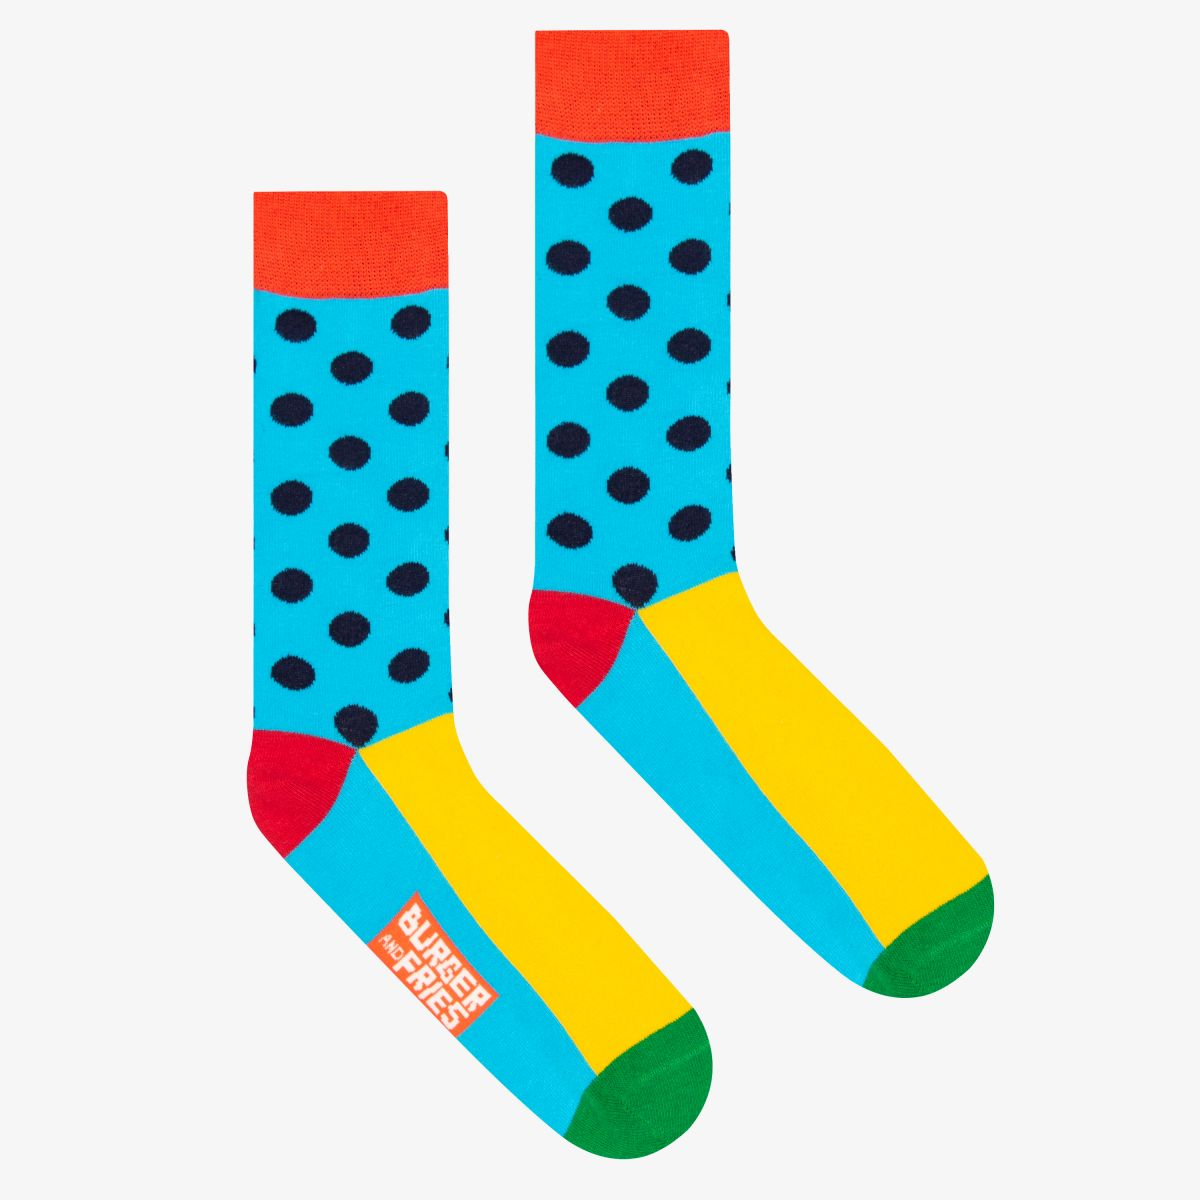 POIS SOCKS LIGHT BLUE/NAVY BLUE